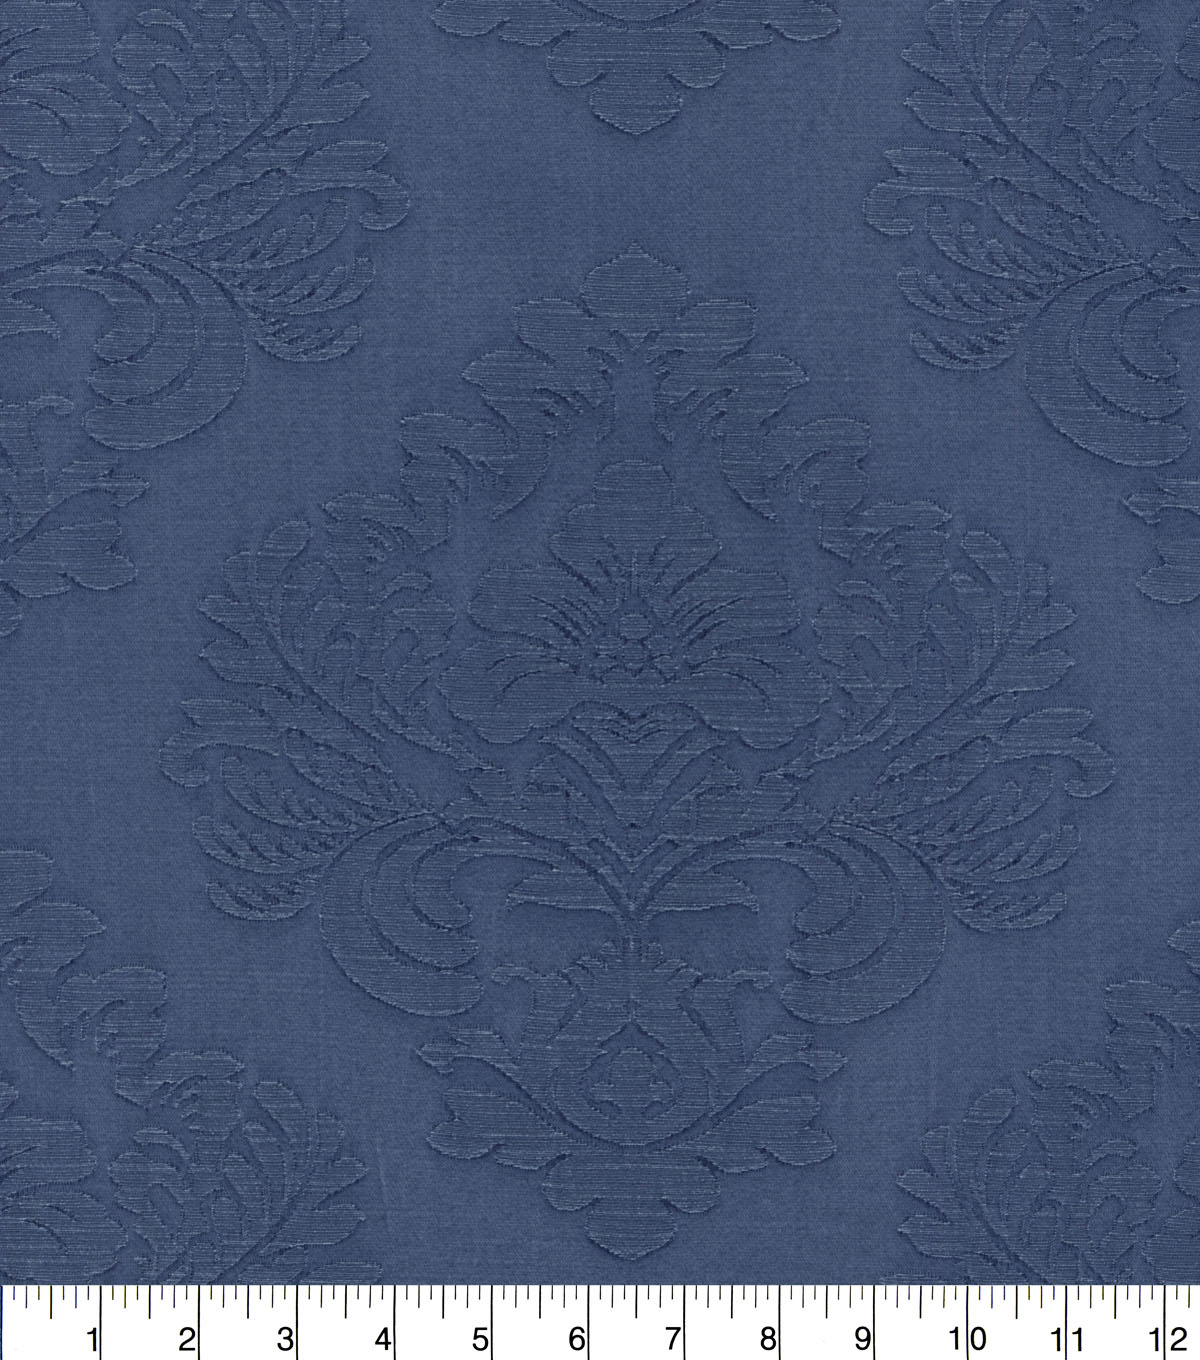 Home Decor 8\u0022x8\u0022 Fabric Swatch-P/K Lifestyles Temptress Lapis